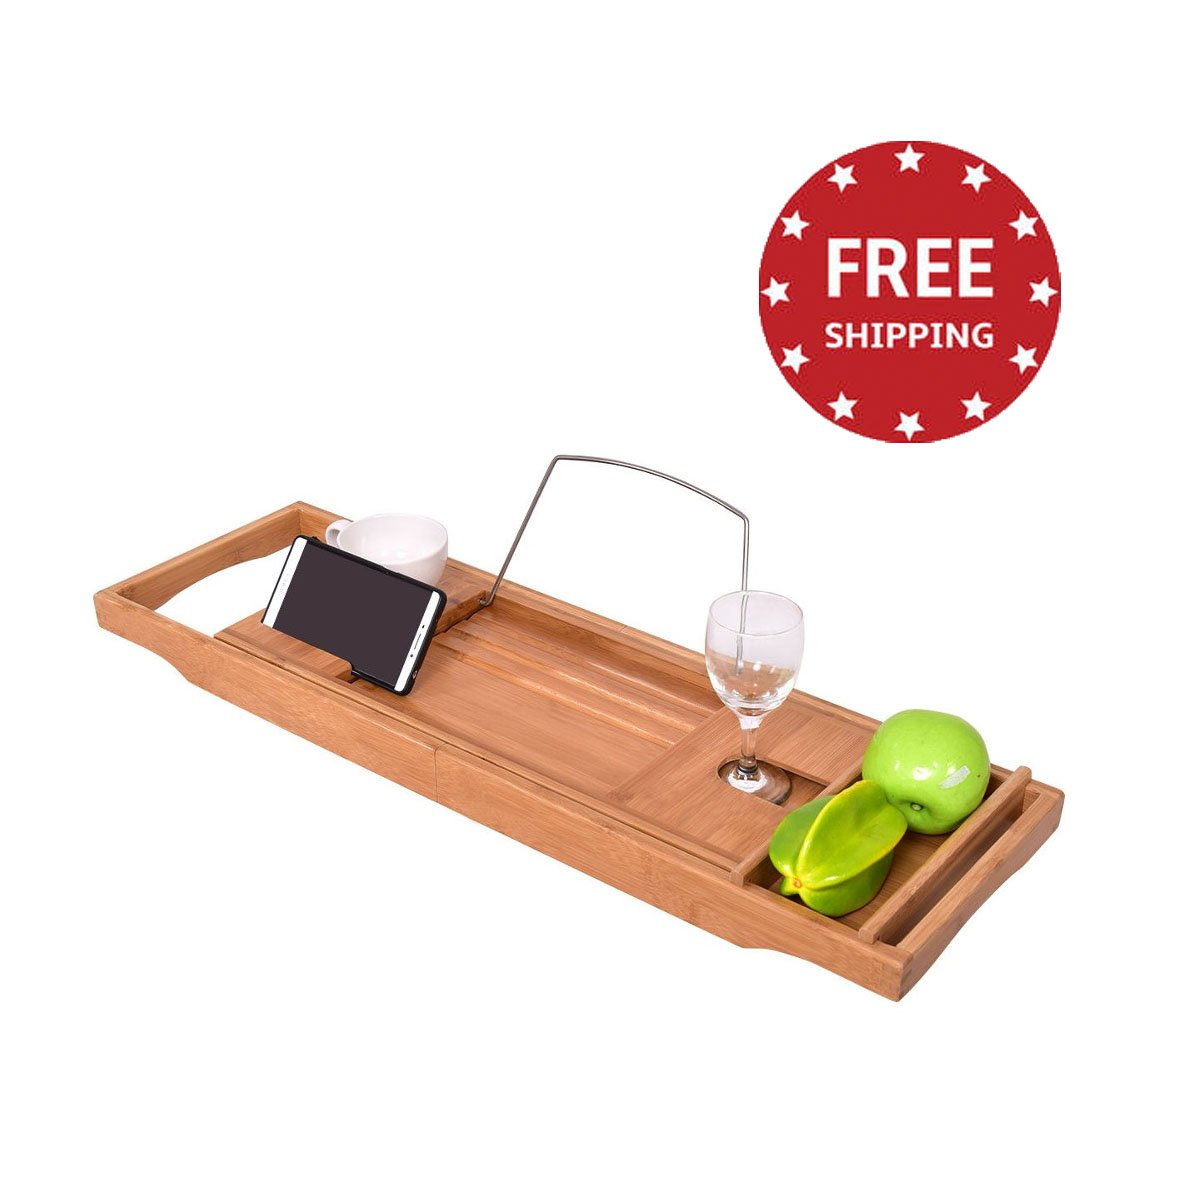 Bamboo Bathtub Caddy Tray Adjustable with Extending Sides Book Cellphone Tablet Holder Glass Holder Home Spa & e-book by jn.widetrade